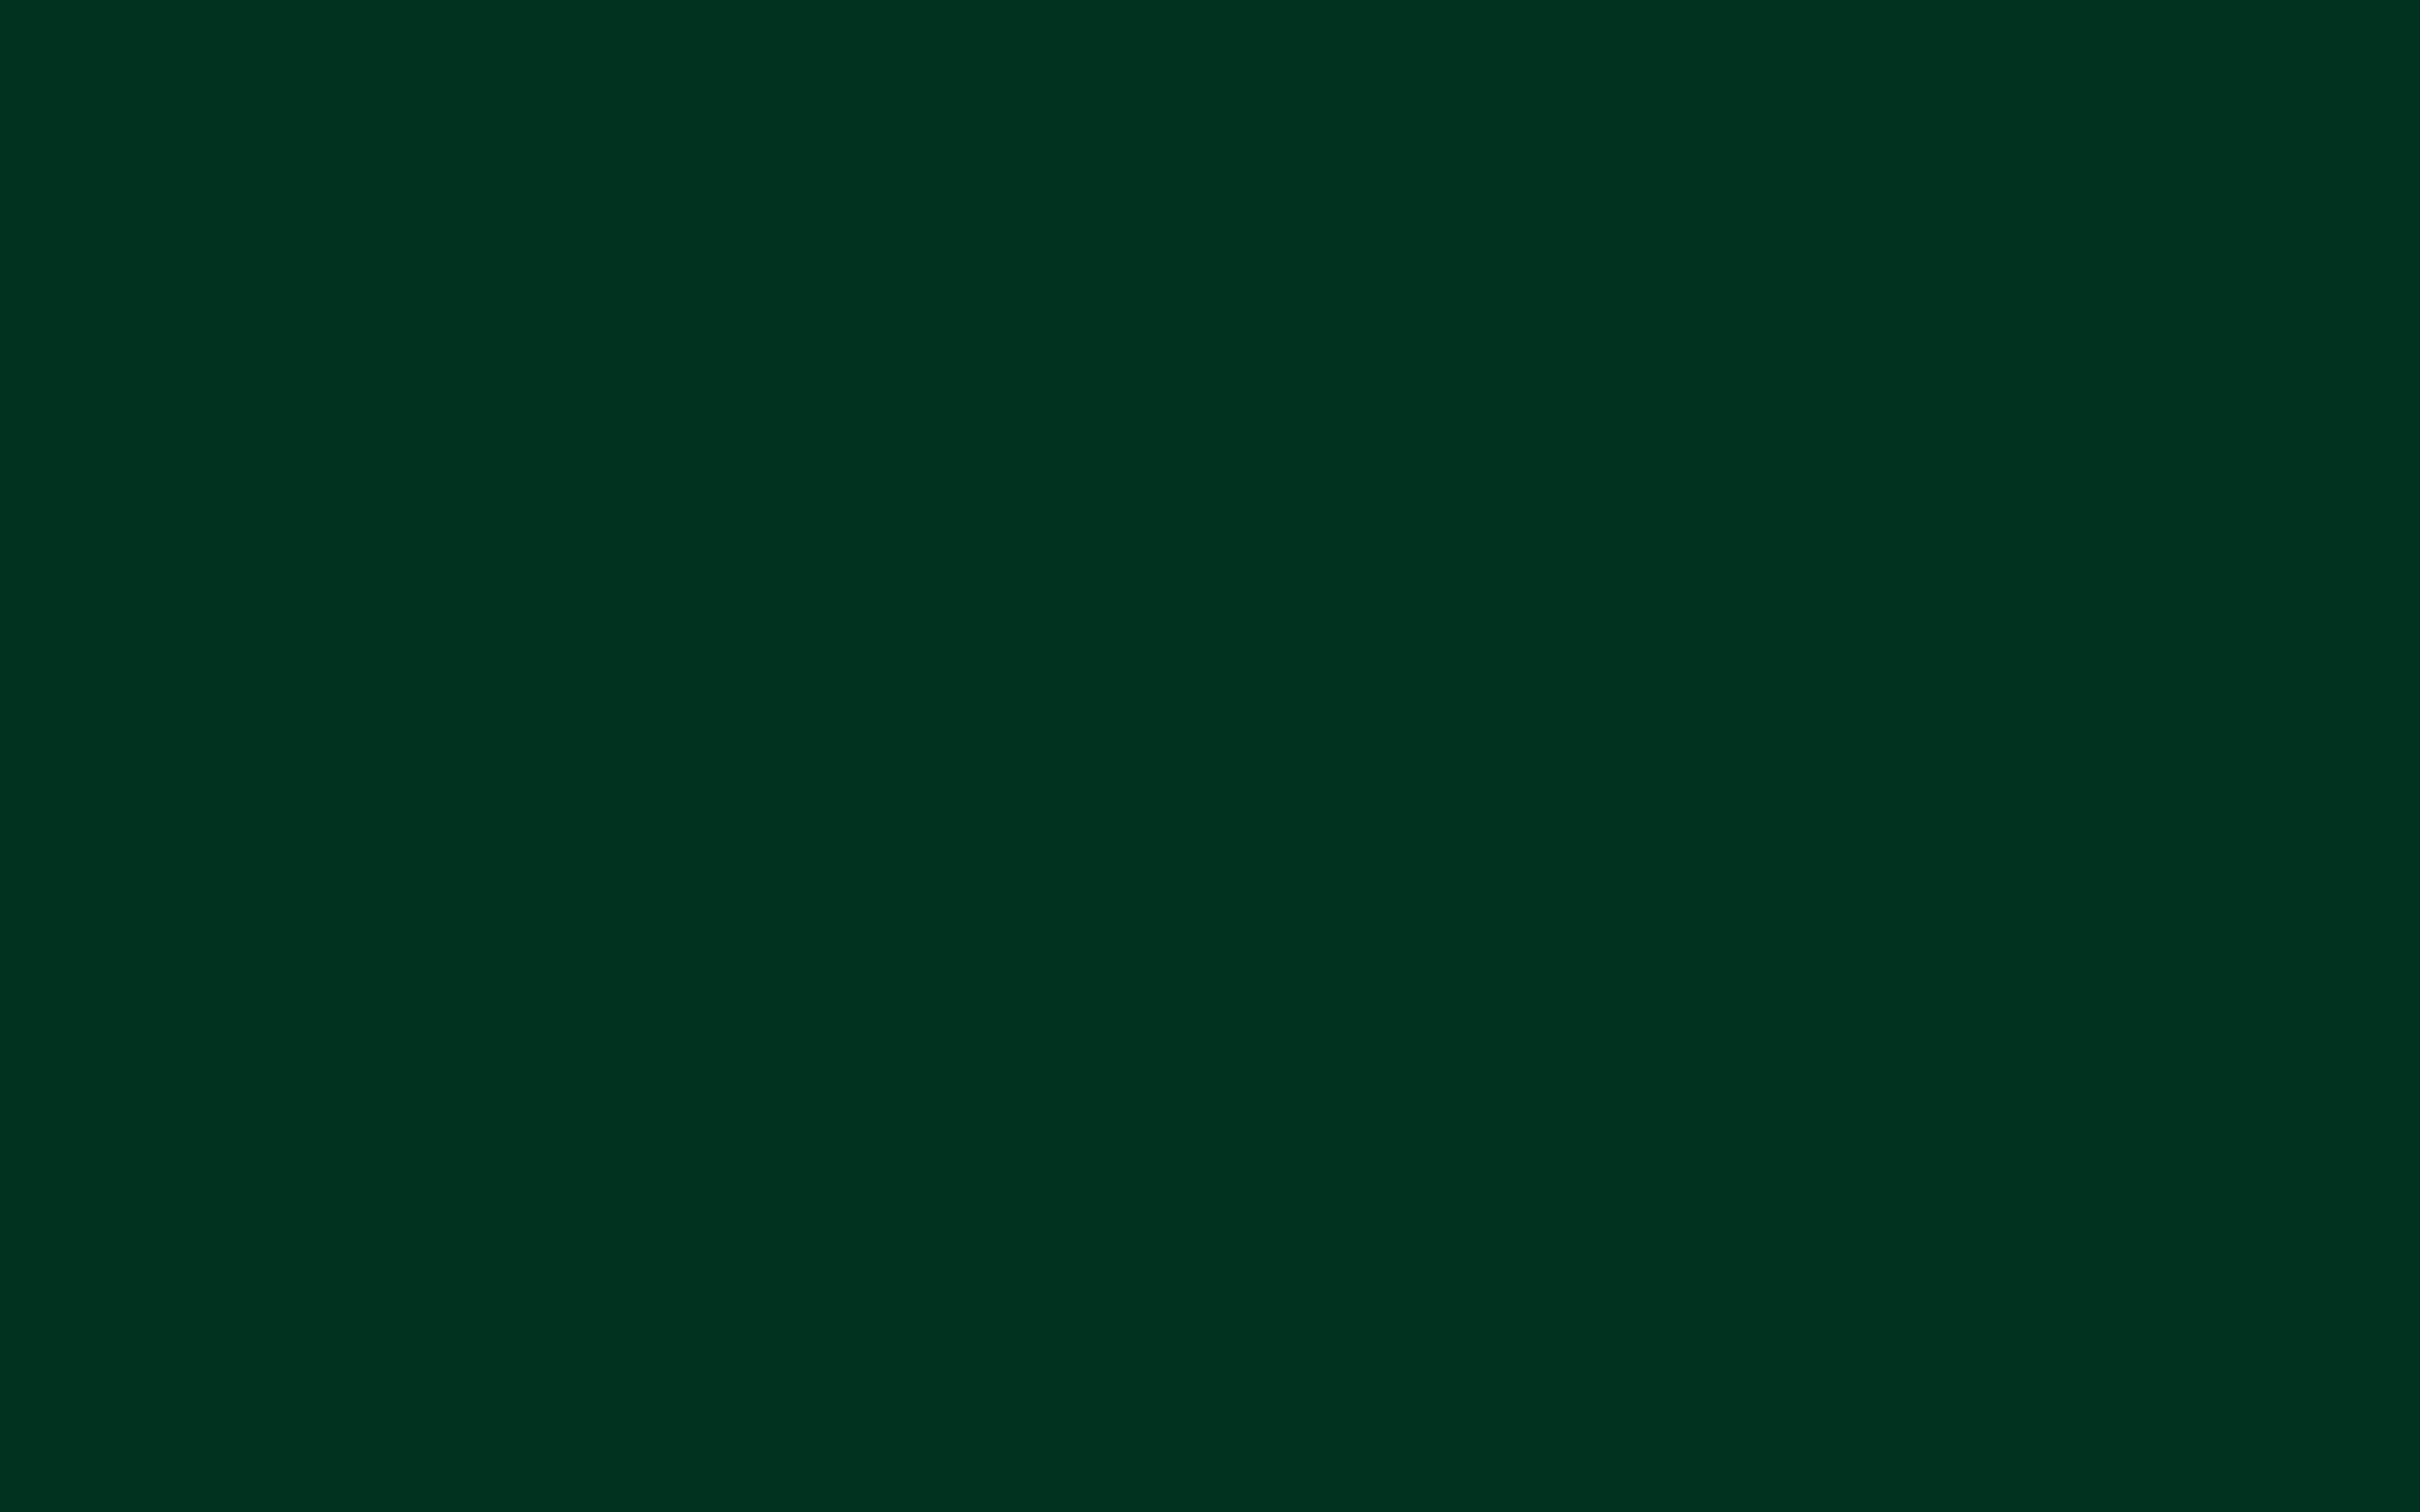 2880x1800 Dark Green Solid Color Background